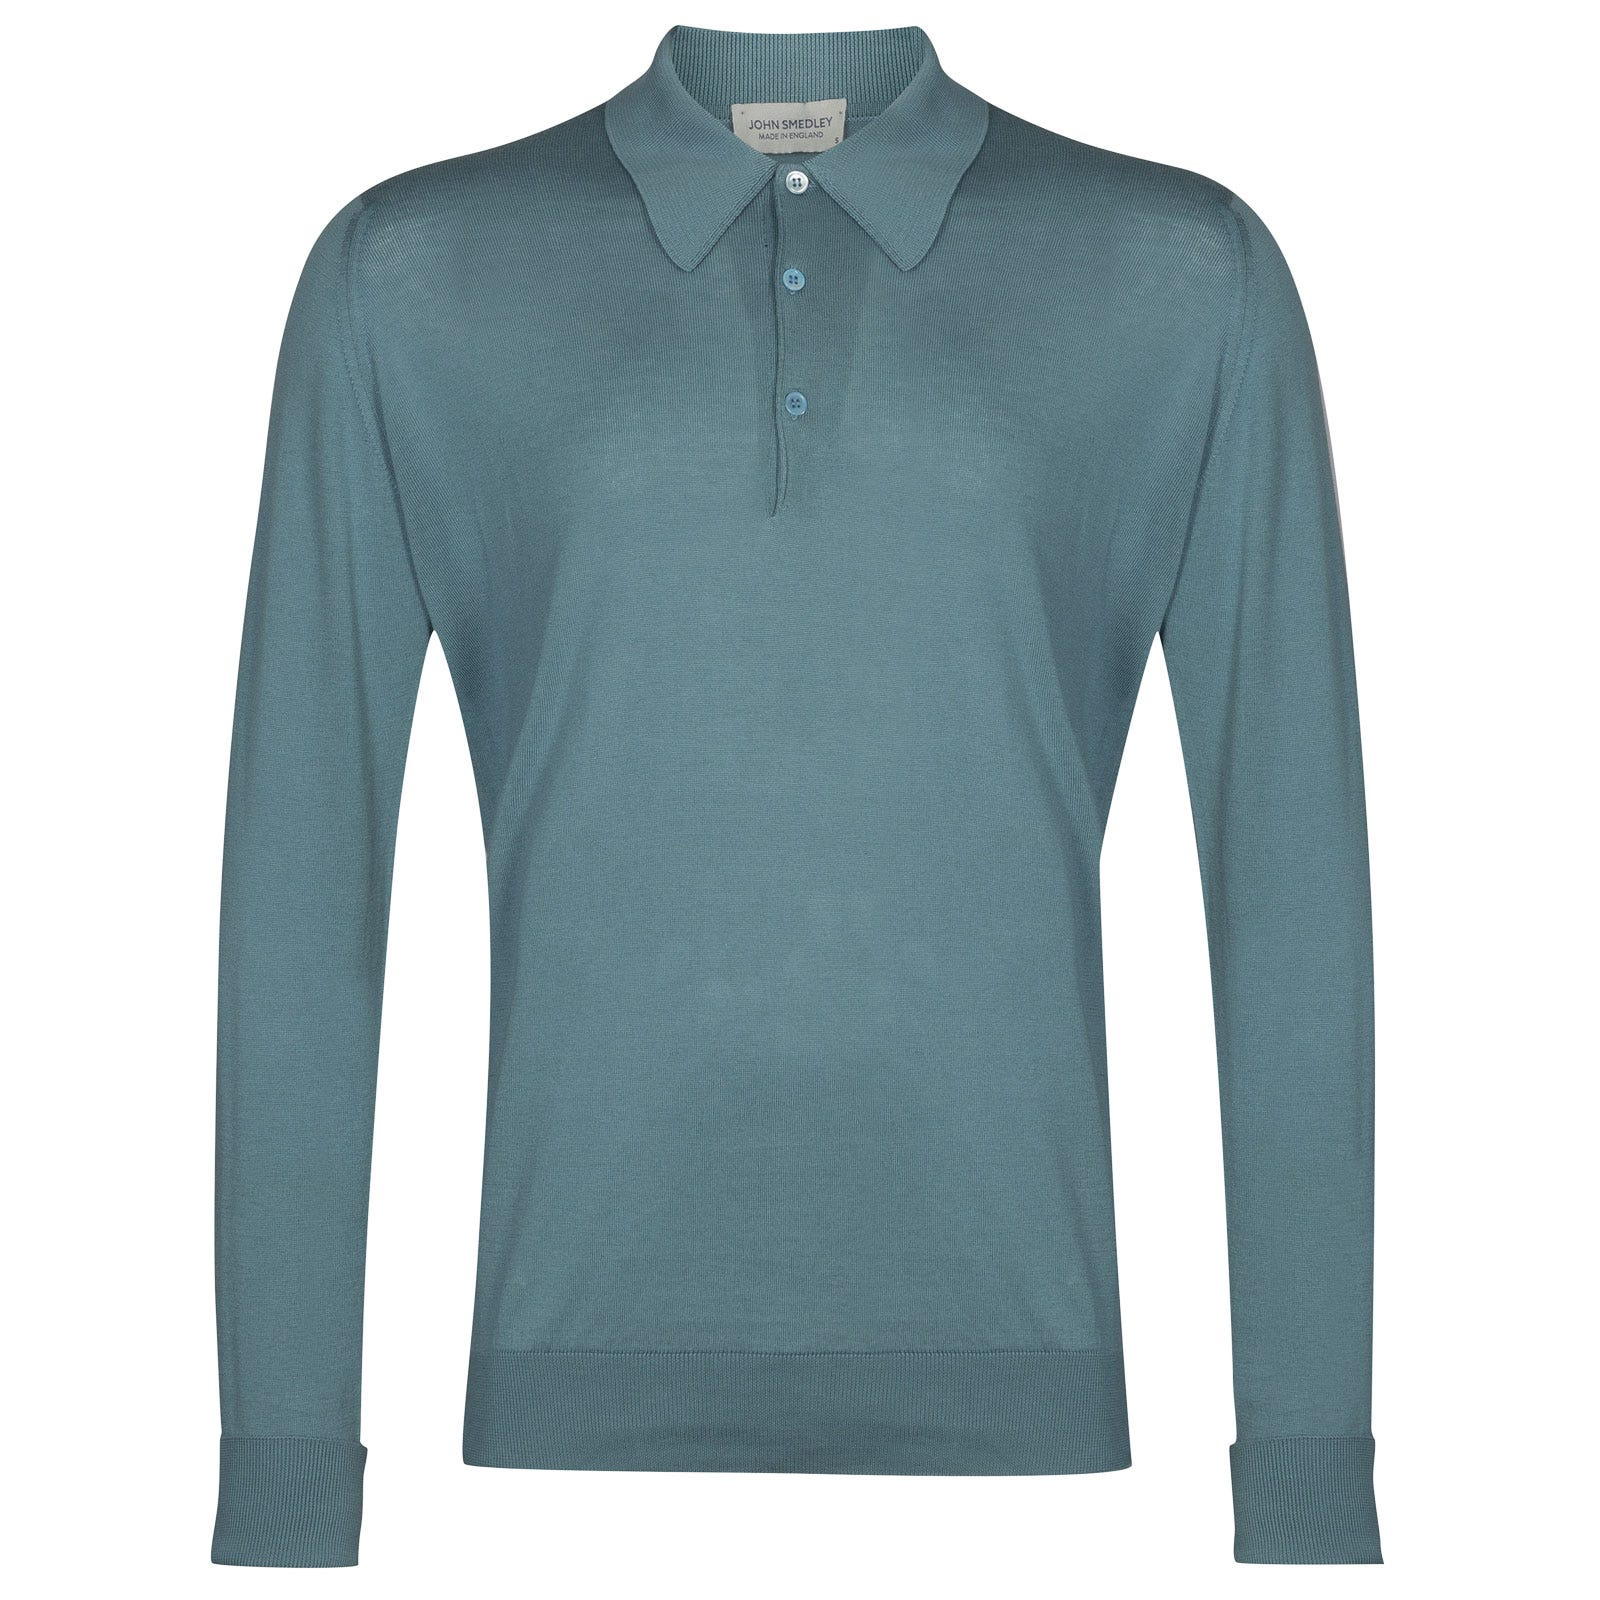 John Smedley finchley Sea Island Cotton Shirt in Summit Blue-L